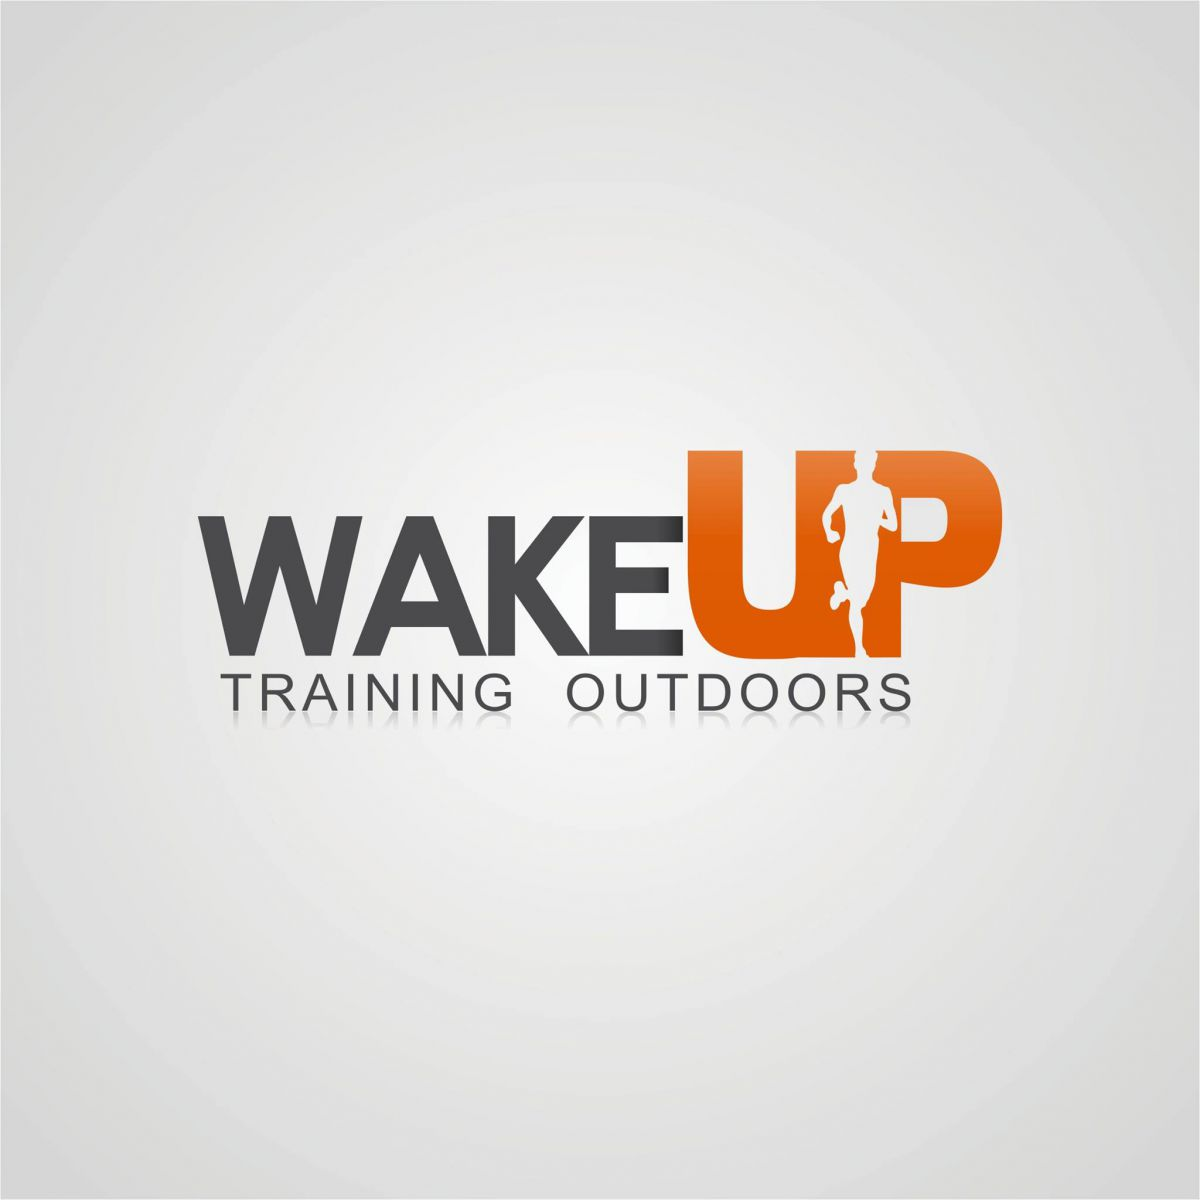 WakeUp Training Outdoors